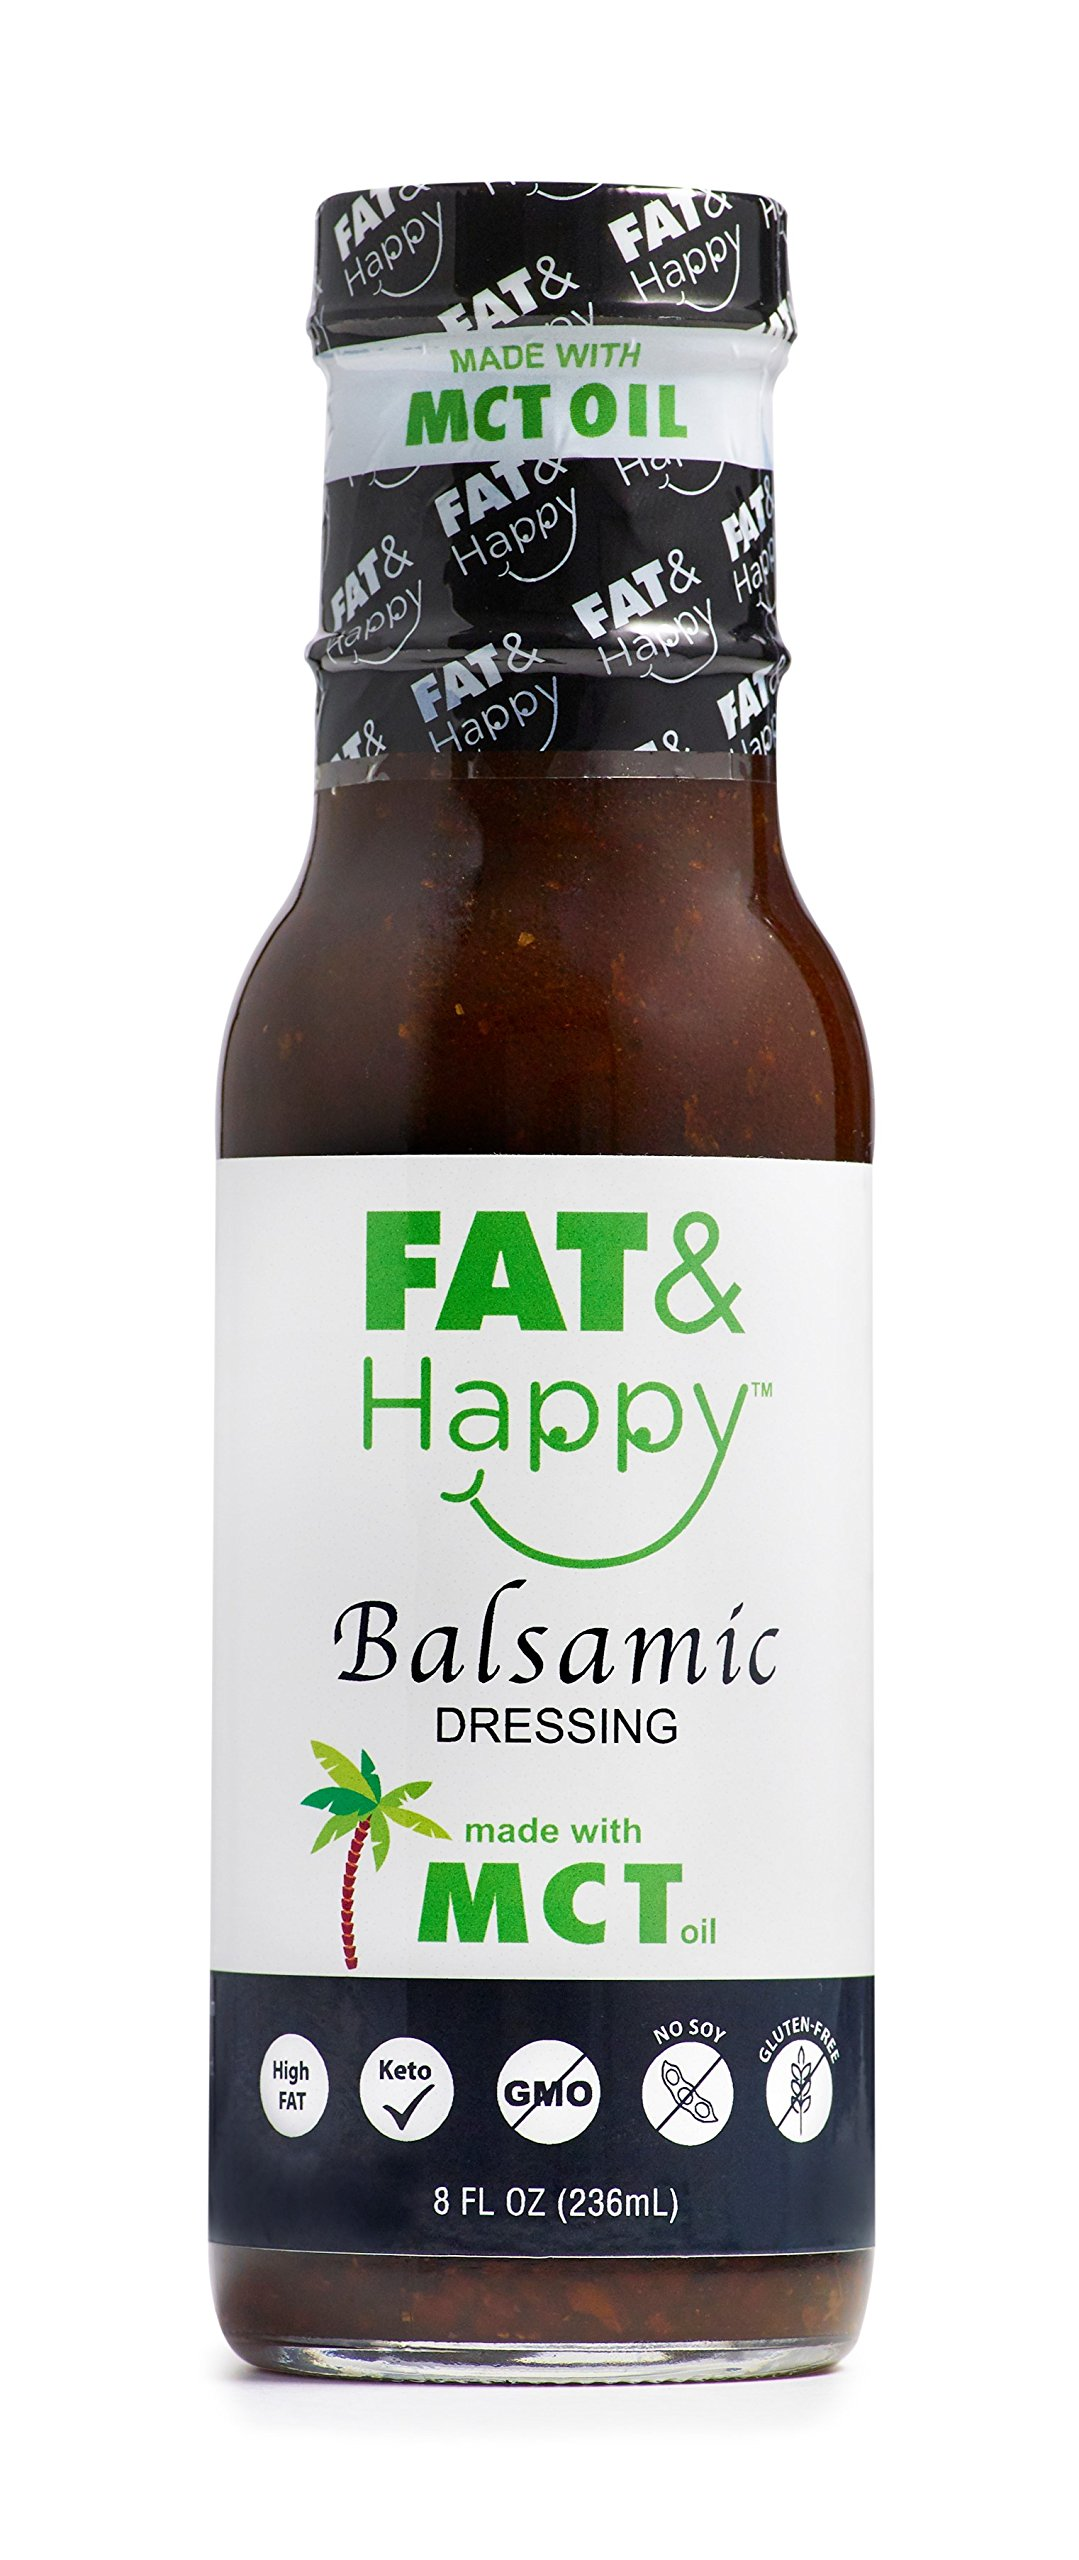 FAT & Happy Balsamic Dressing 8oz, made with MCT Oil, Keto